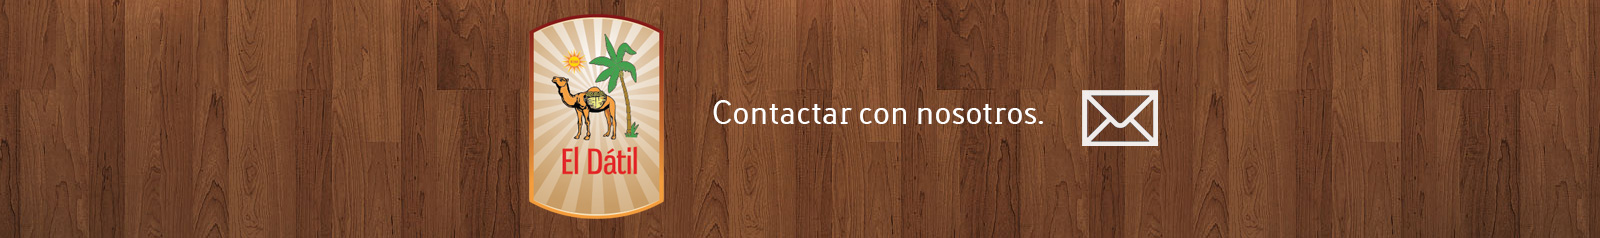 Contactar con el datil